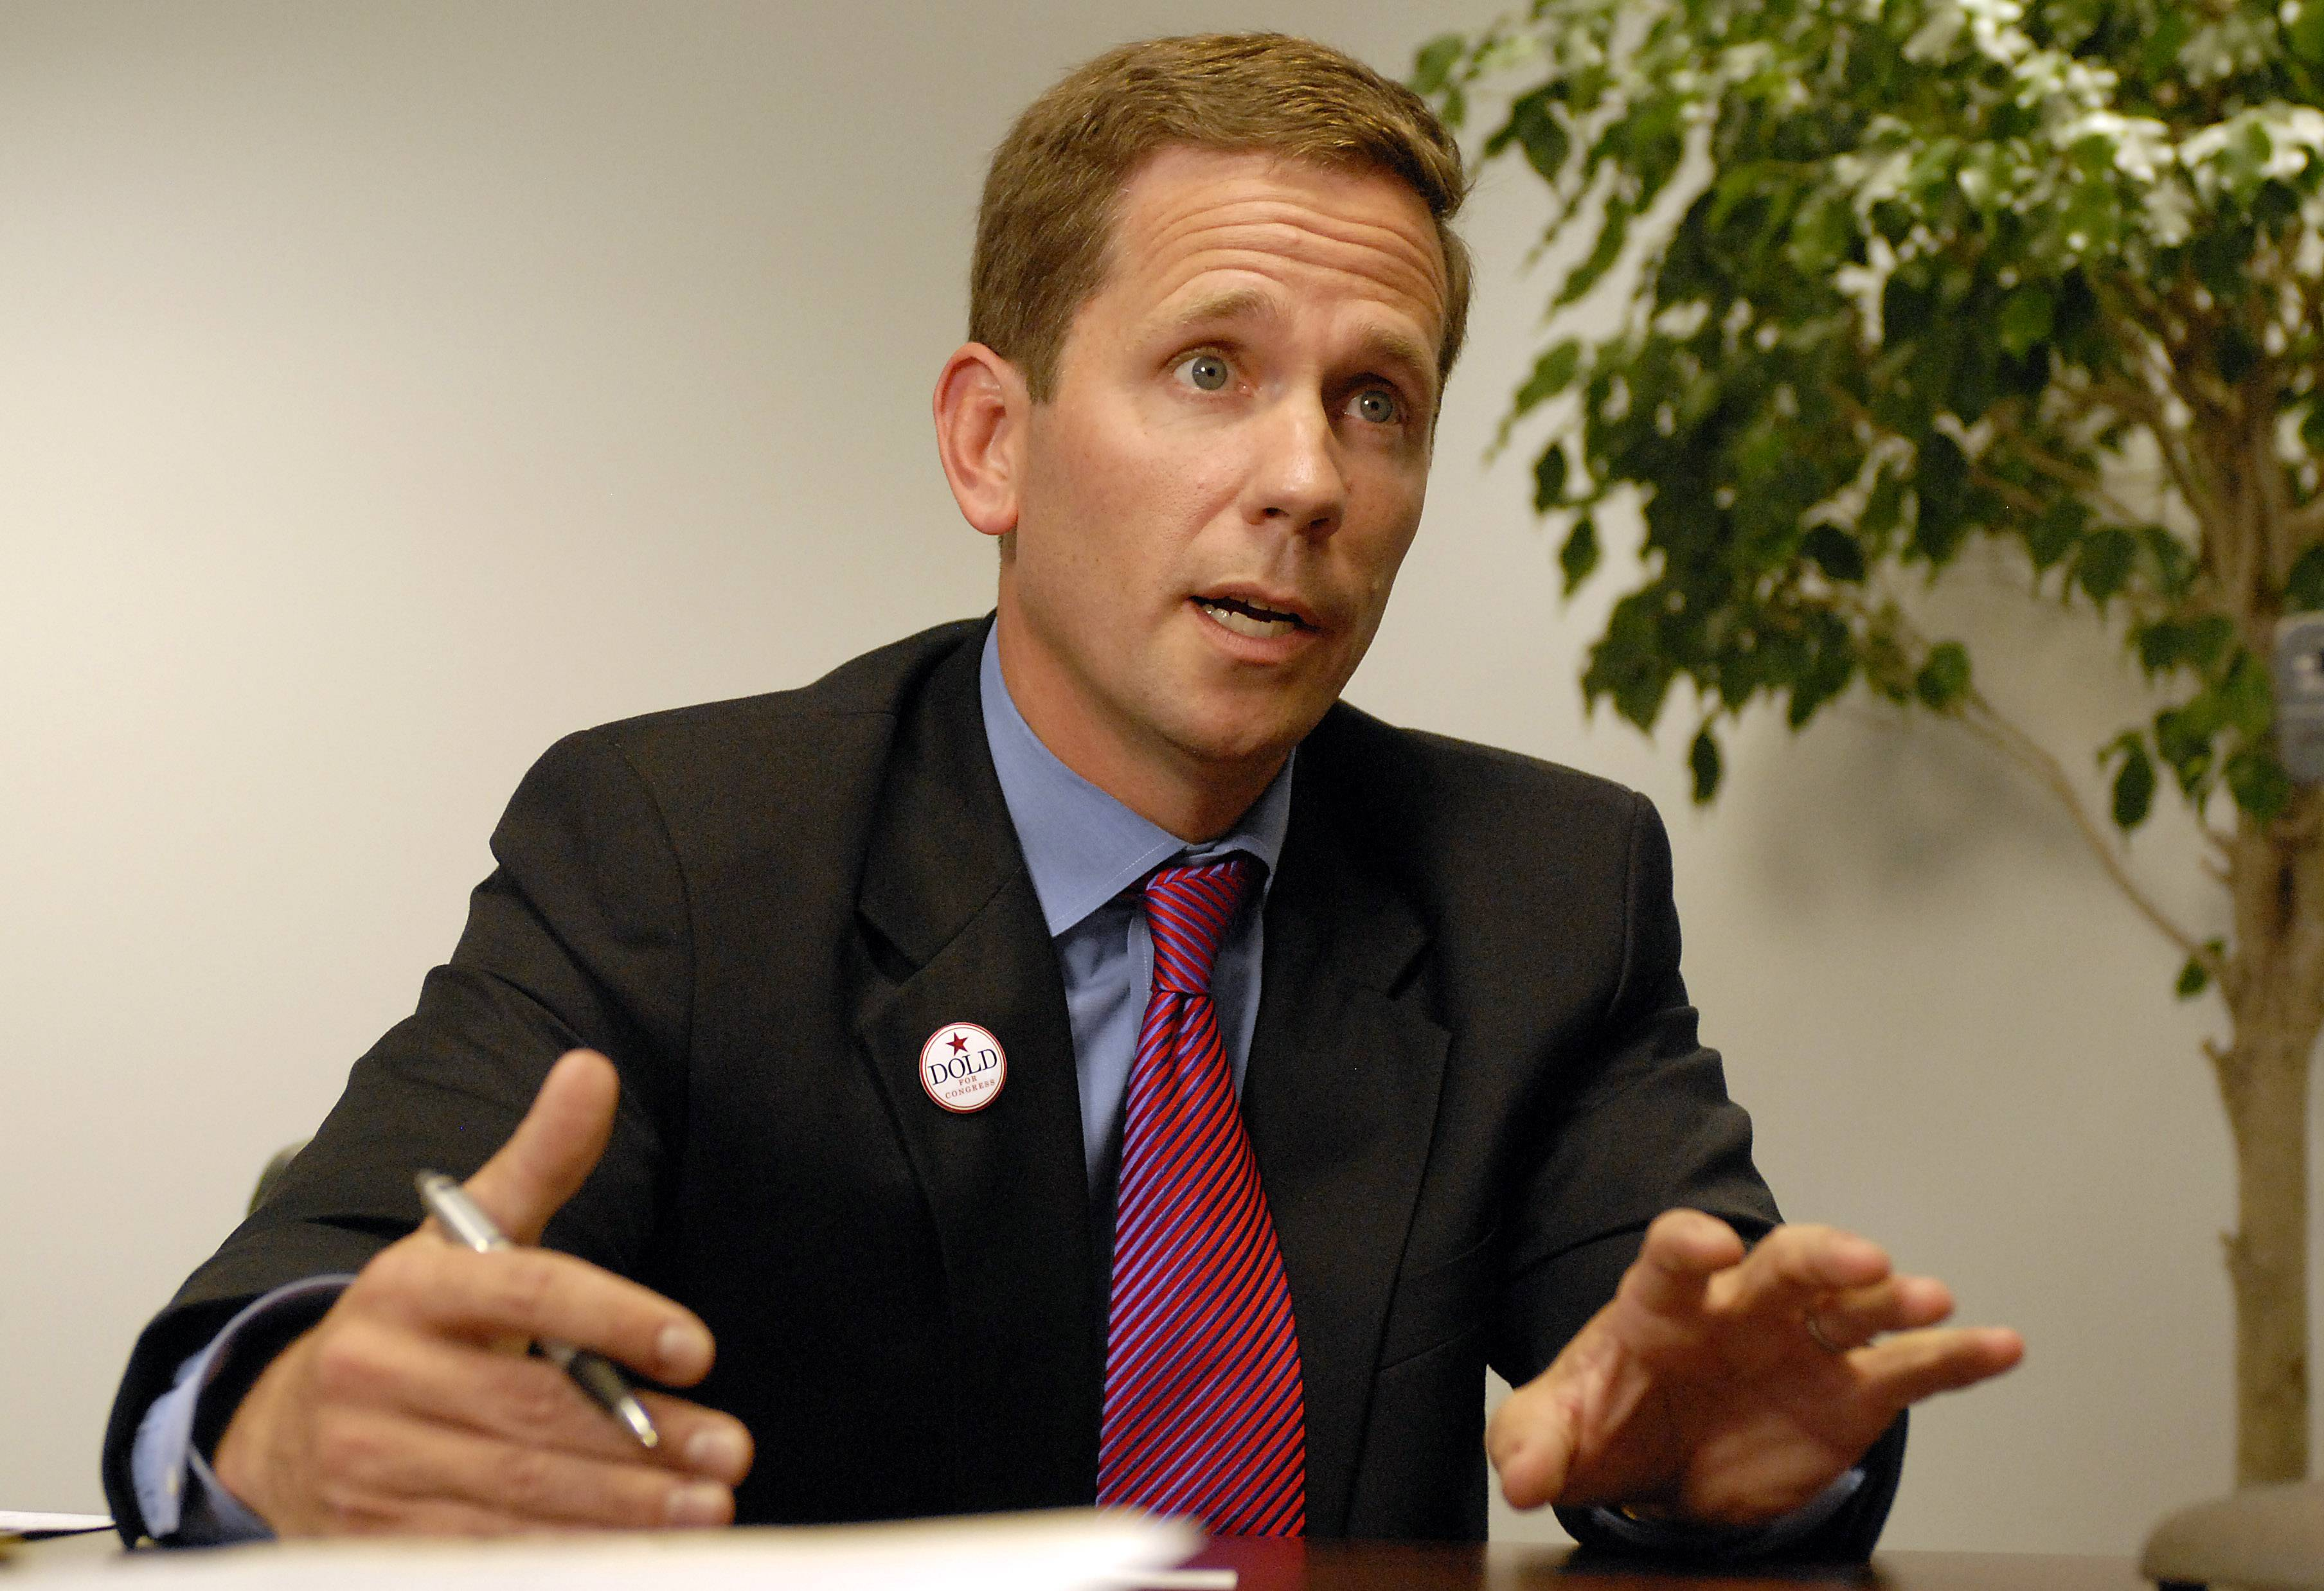 Riopell: Dold says 2016 will be different, better year for him than 2012